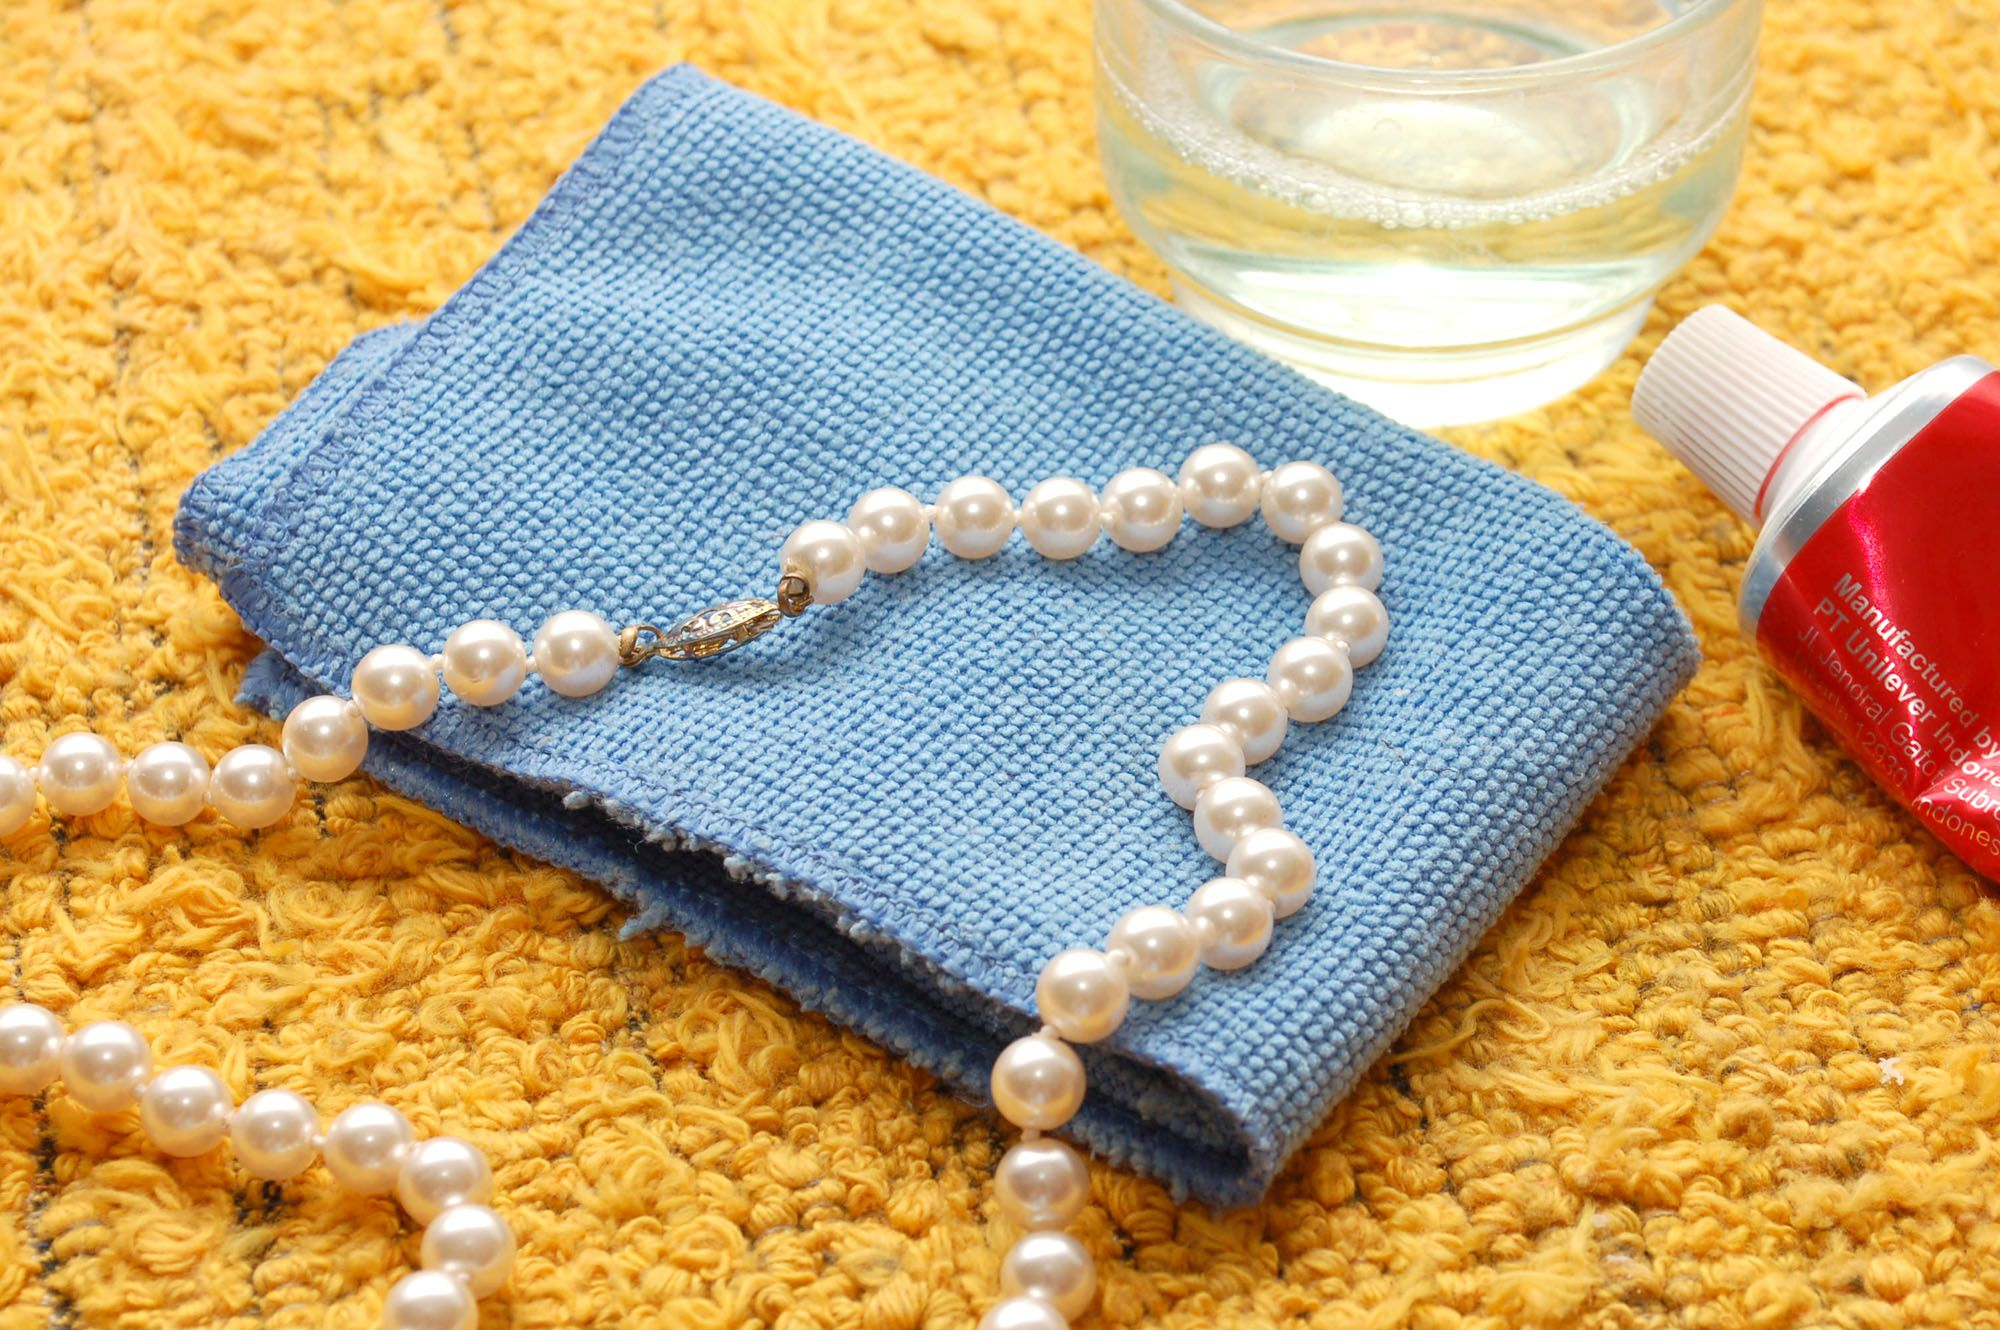 How To Clean A Pearl Necklace 5 Steps How To Clean Pearls Cleaning Jewelry Rose Gold Diamond Ring Engagement